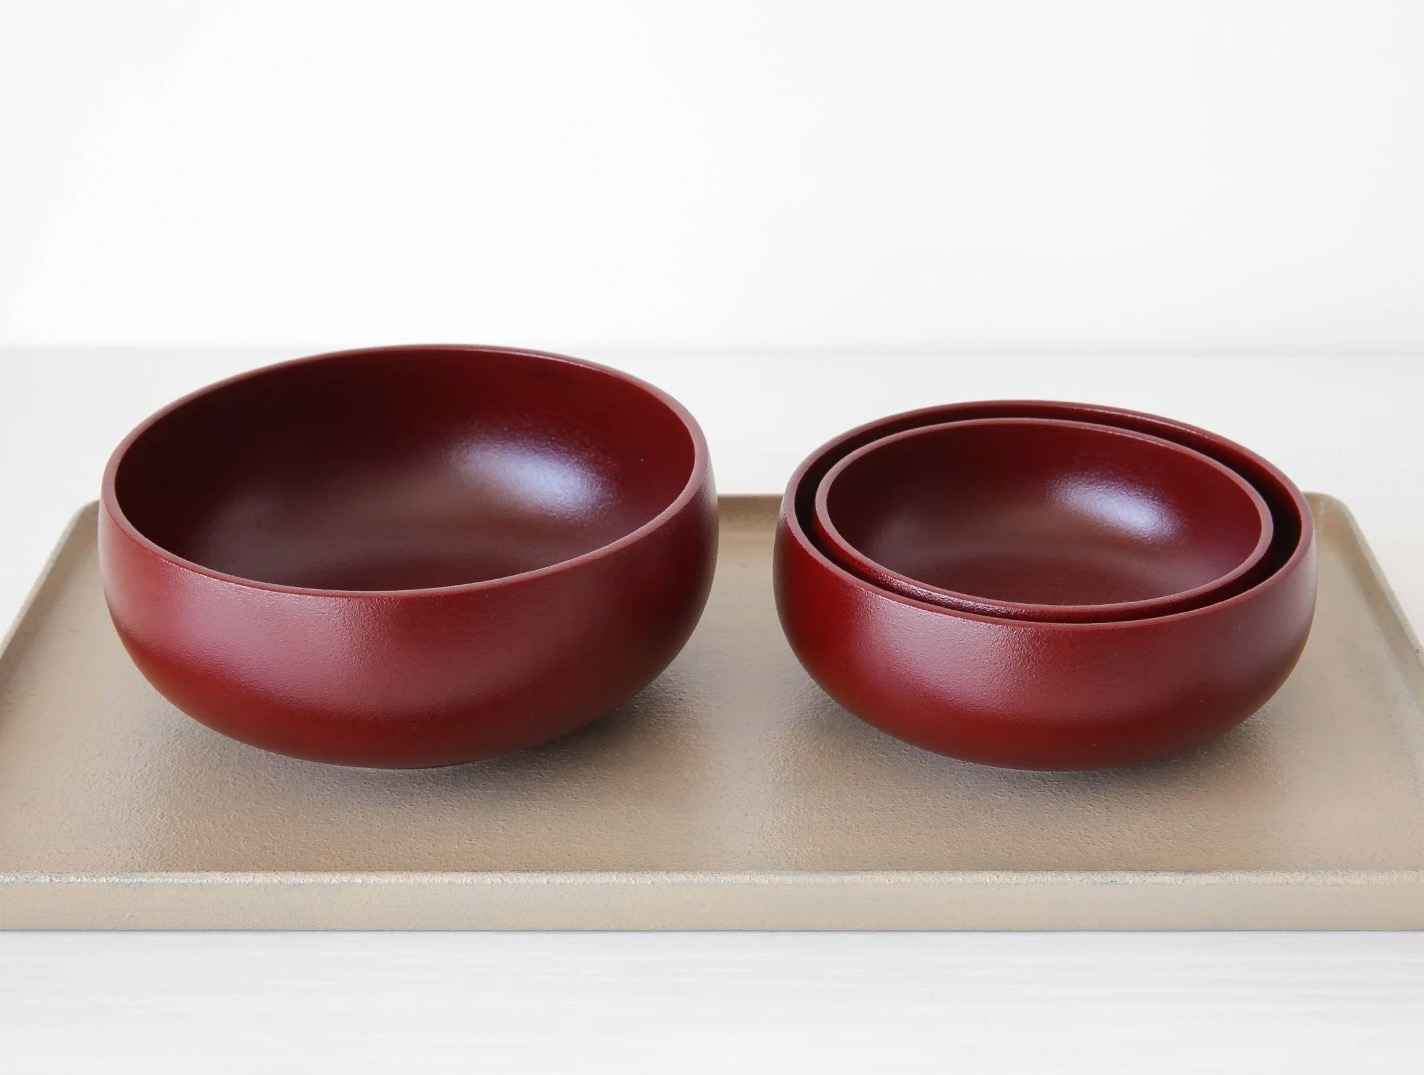 Red Nested Urushi (Lacquer) Bowls Handcrafted by Fujii Works